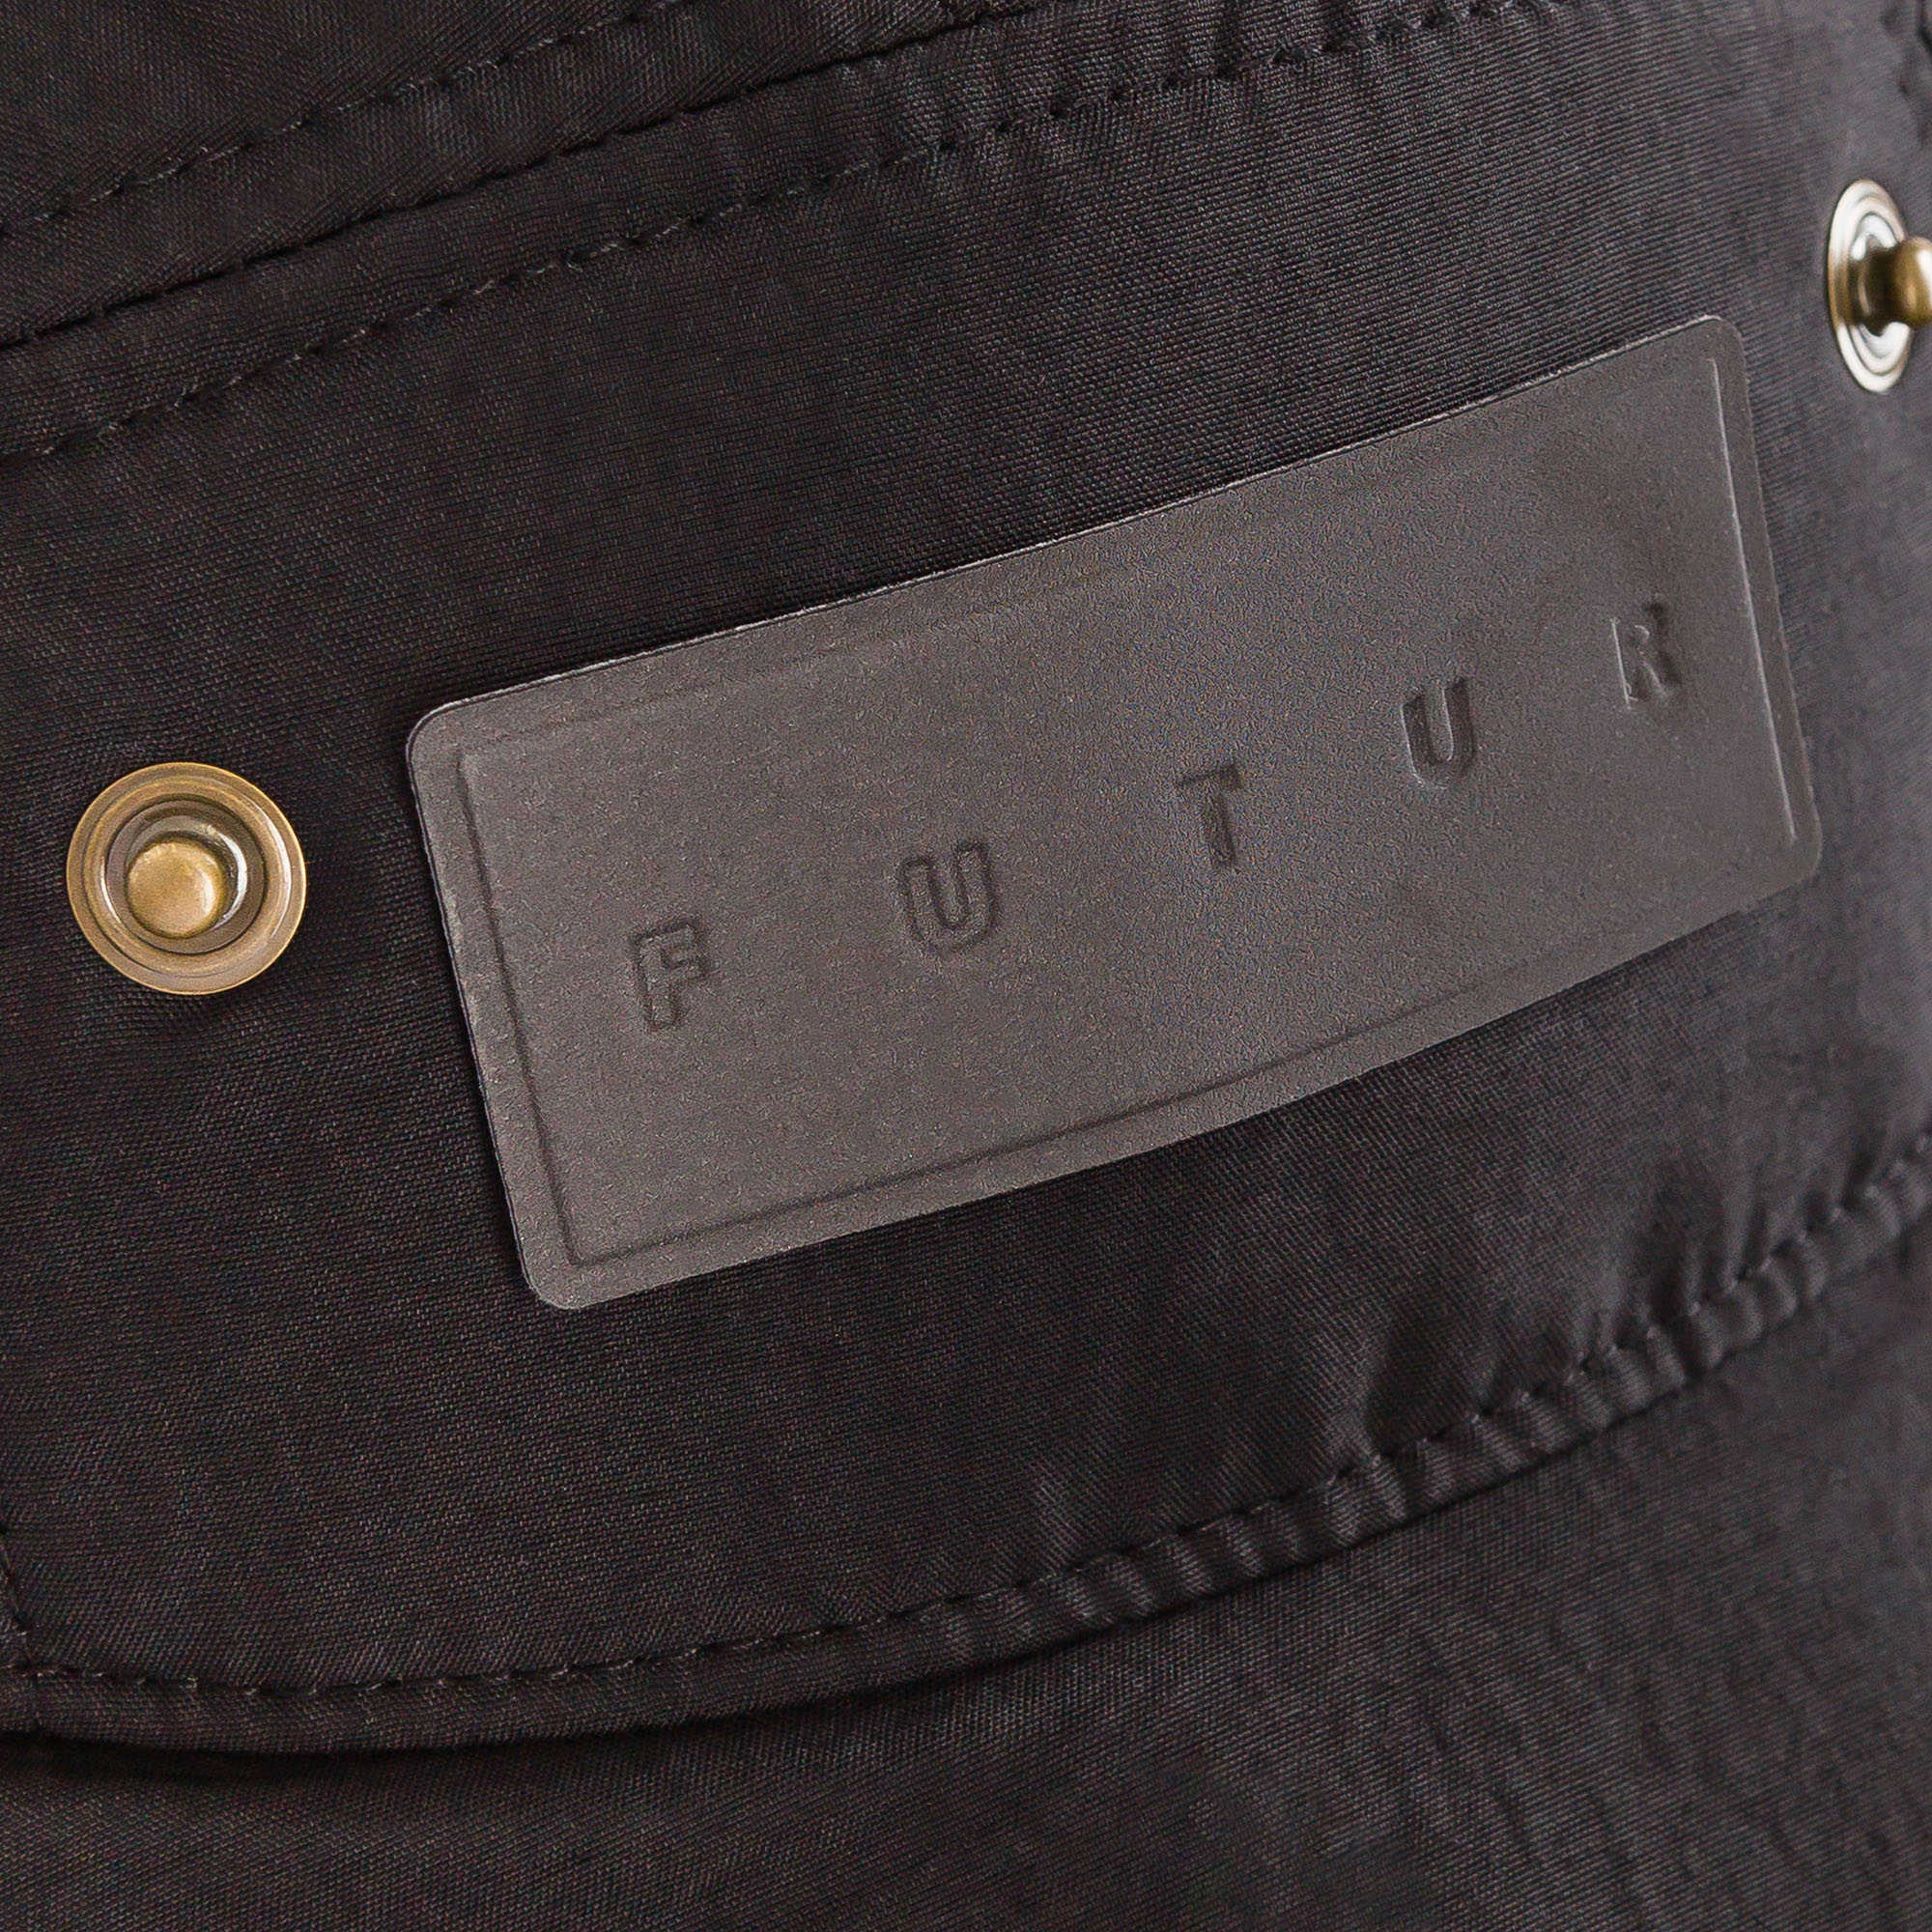 HELLY HANSEN X FUTUR - FLIGHT CAP - DETAIL